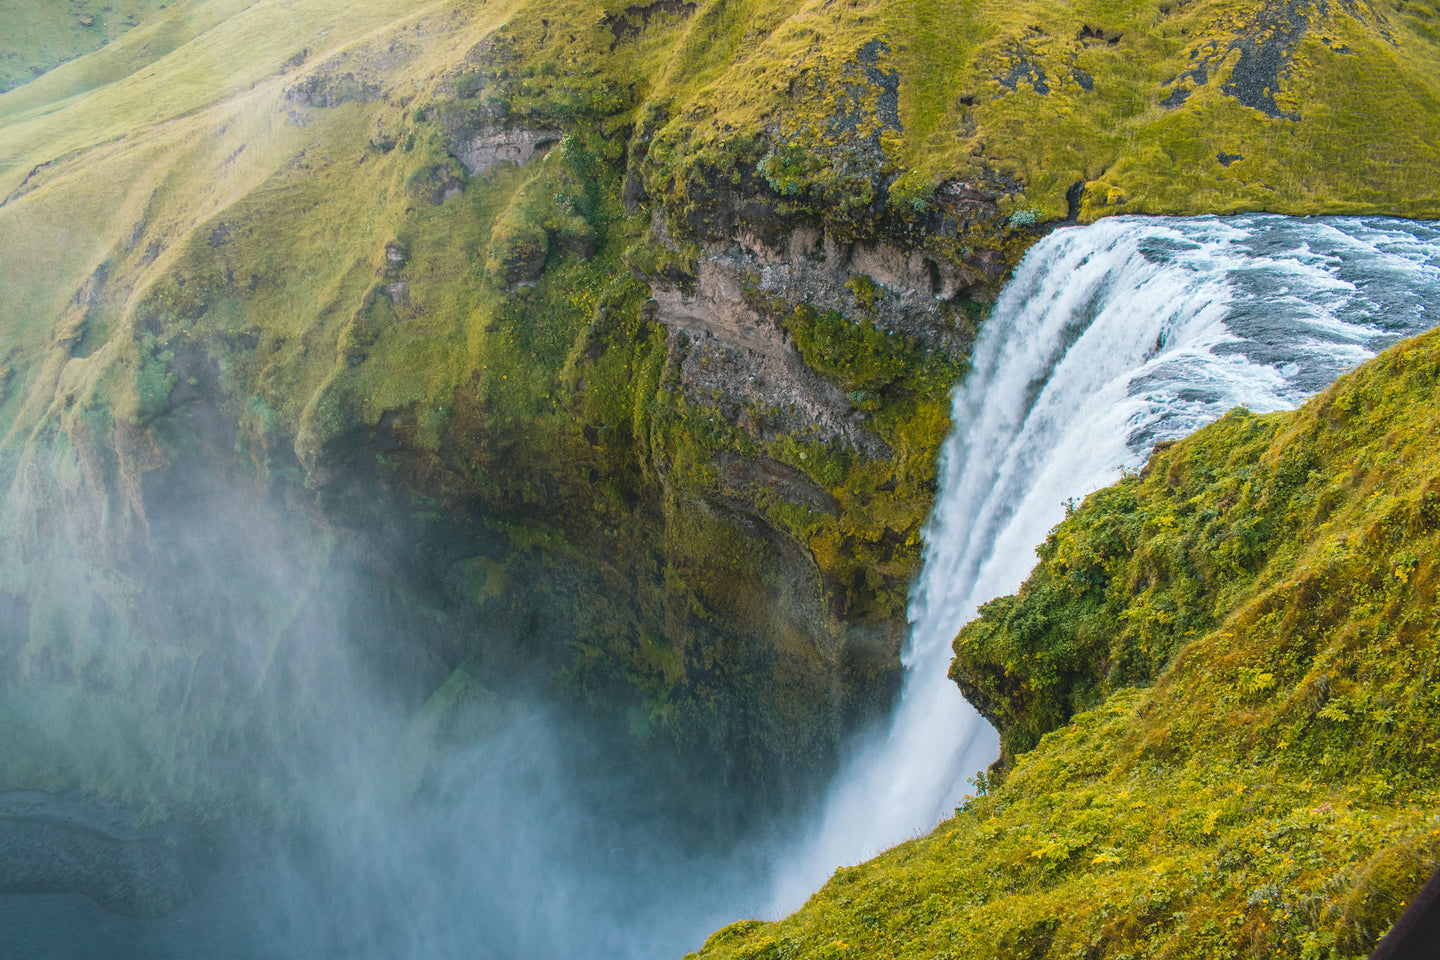 Bird's eye view photography on waterfalls rushing through cliff - W-Photographie